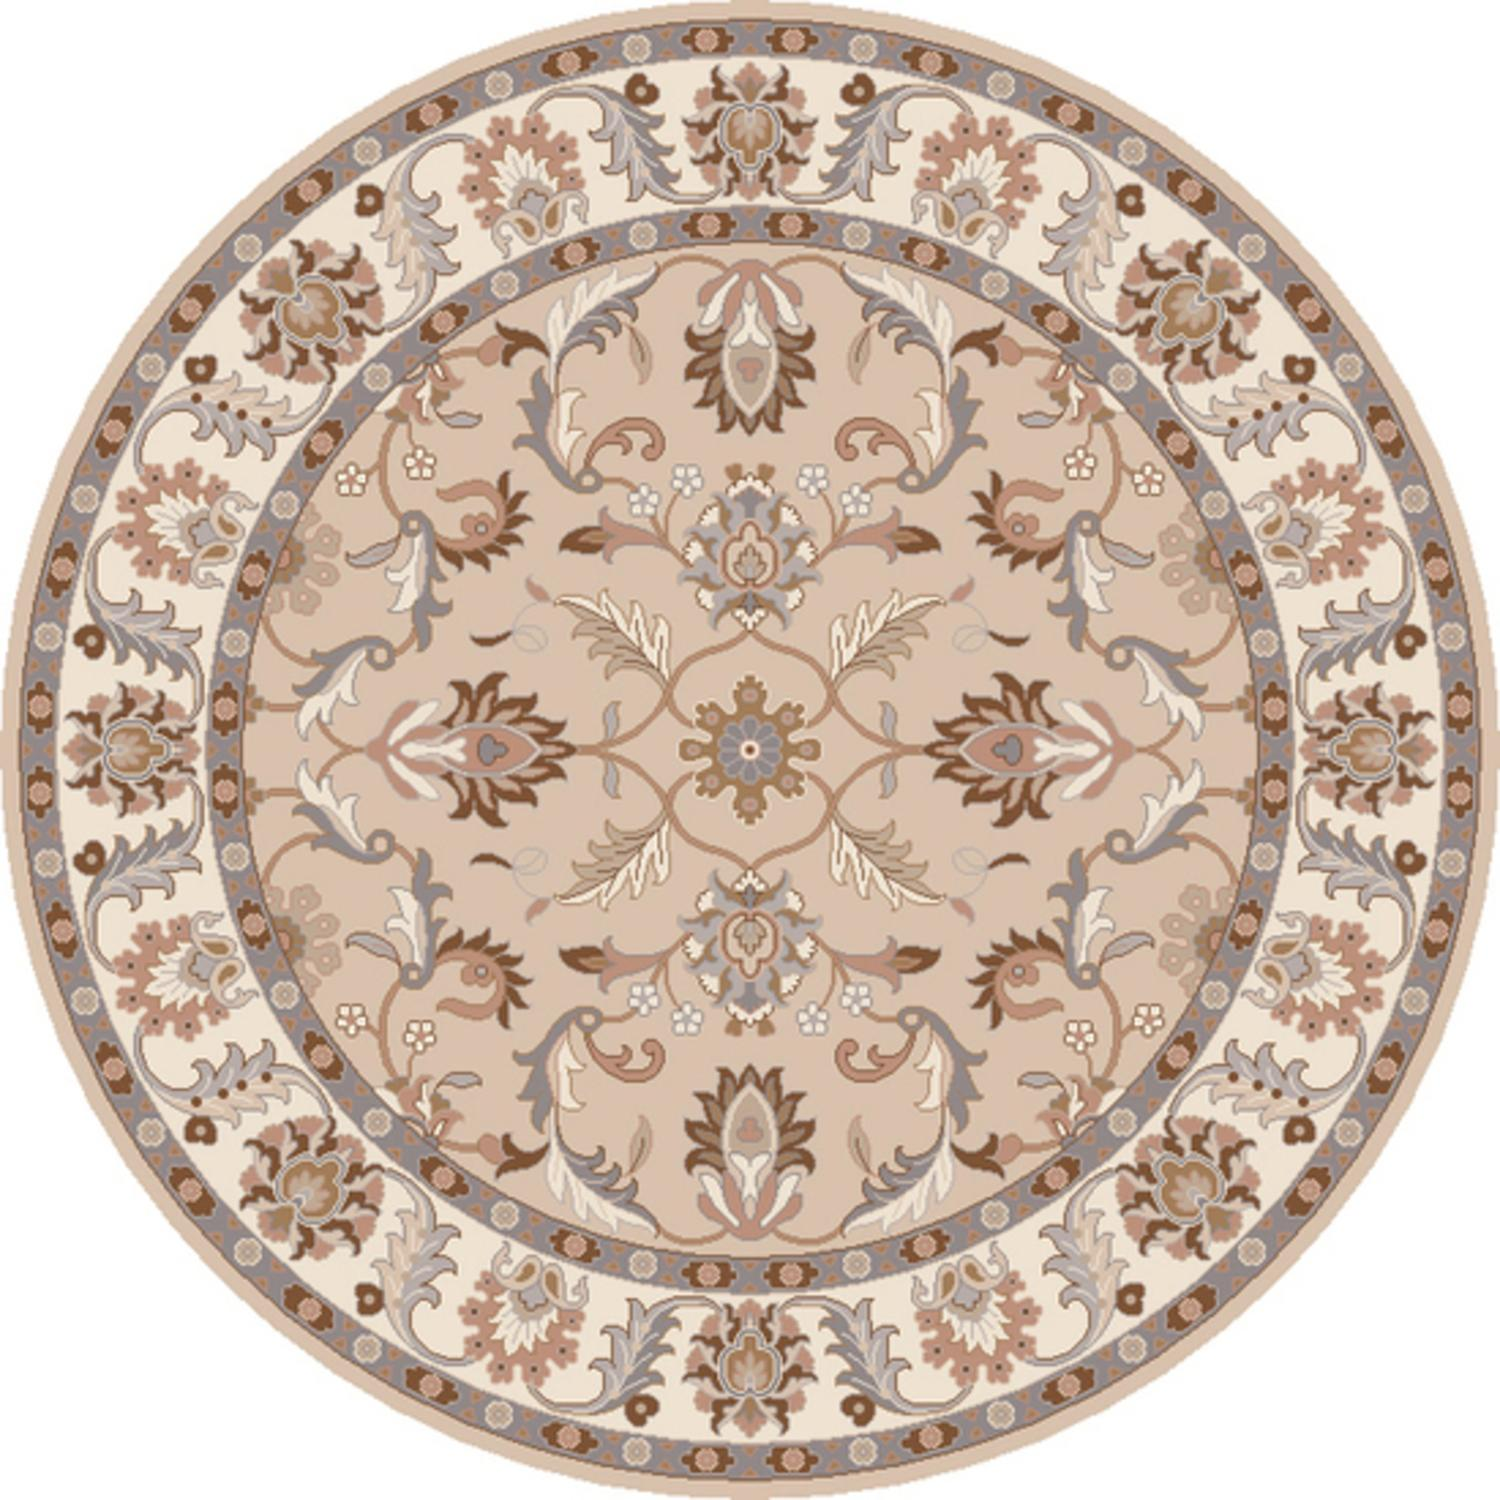 9.75' Publius Mushroom Brown and Creme Hand Tufted Wool Round Area Throw Rug